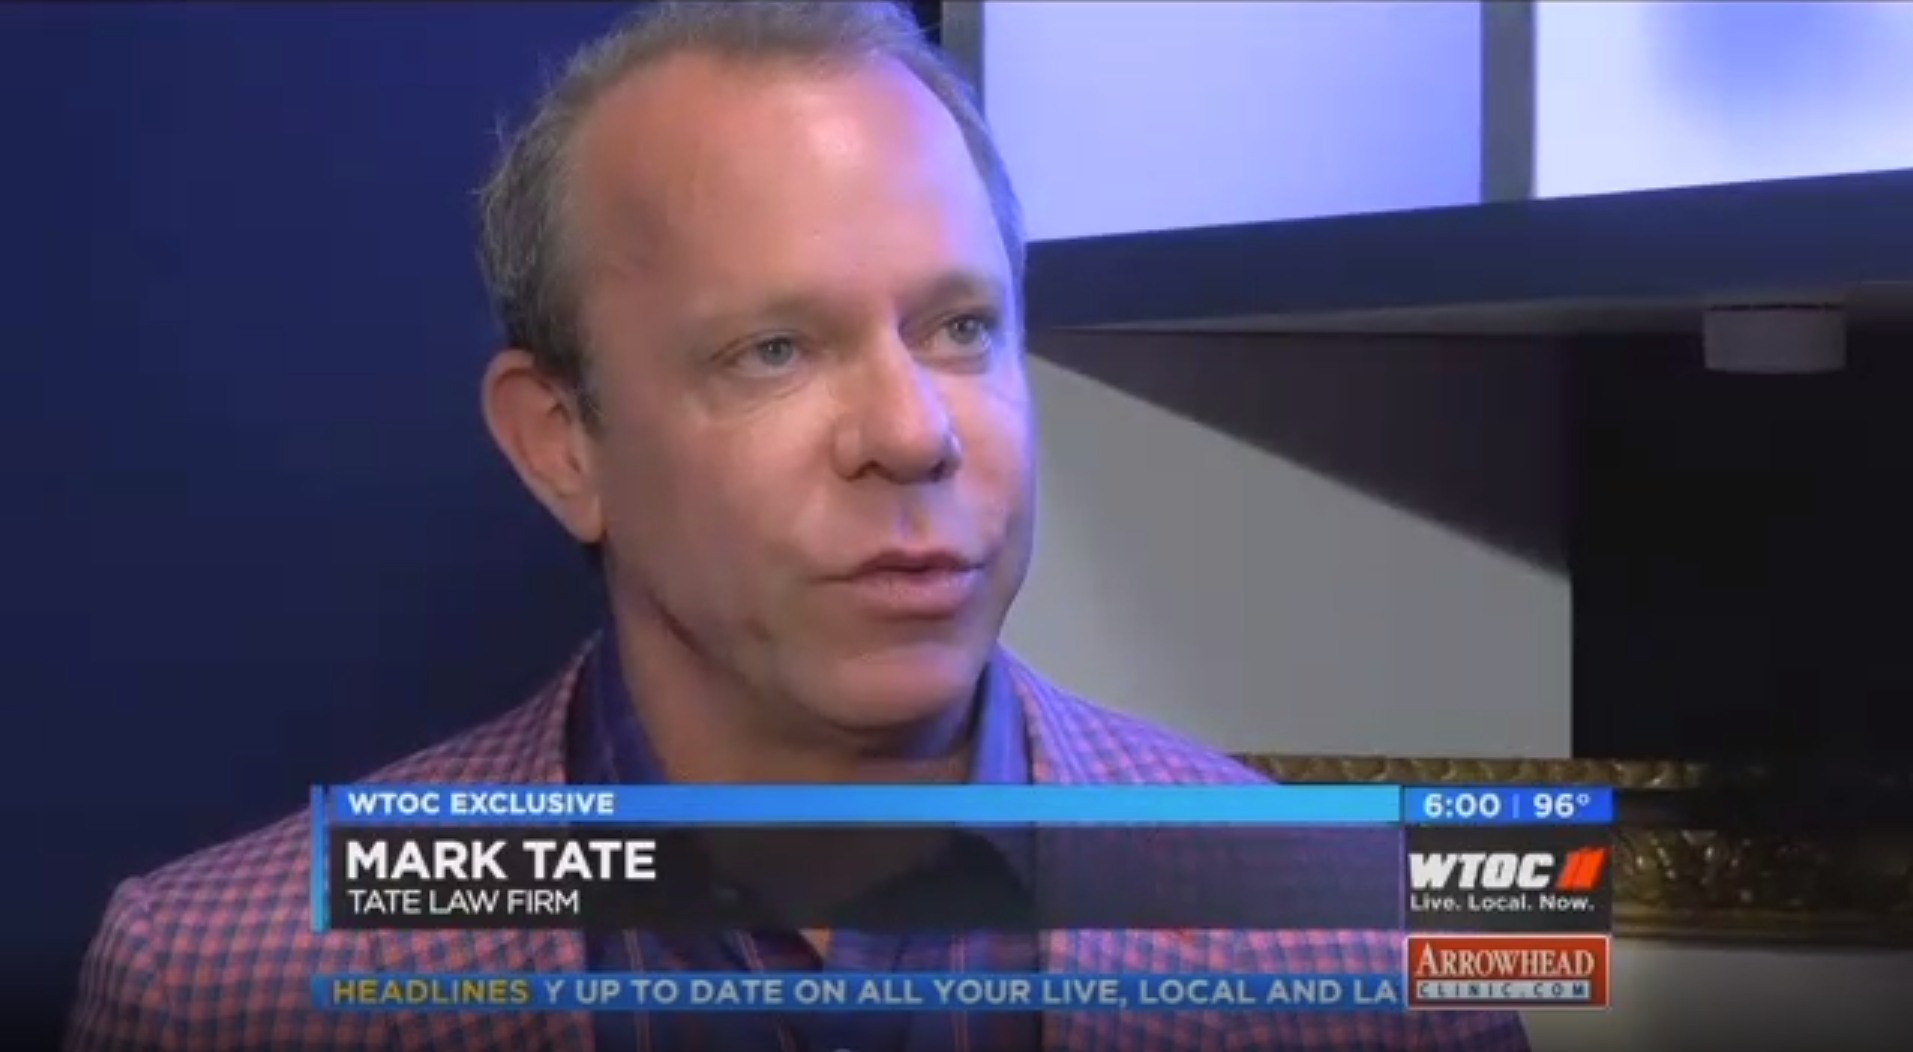 Tate Law Group on WTOC – $4 5 Million Priest Sex Abuse Settlement